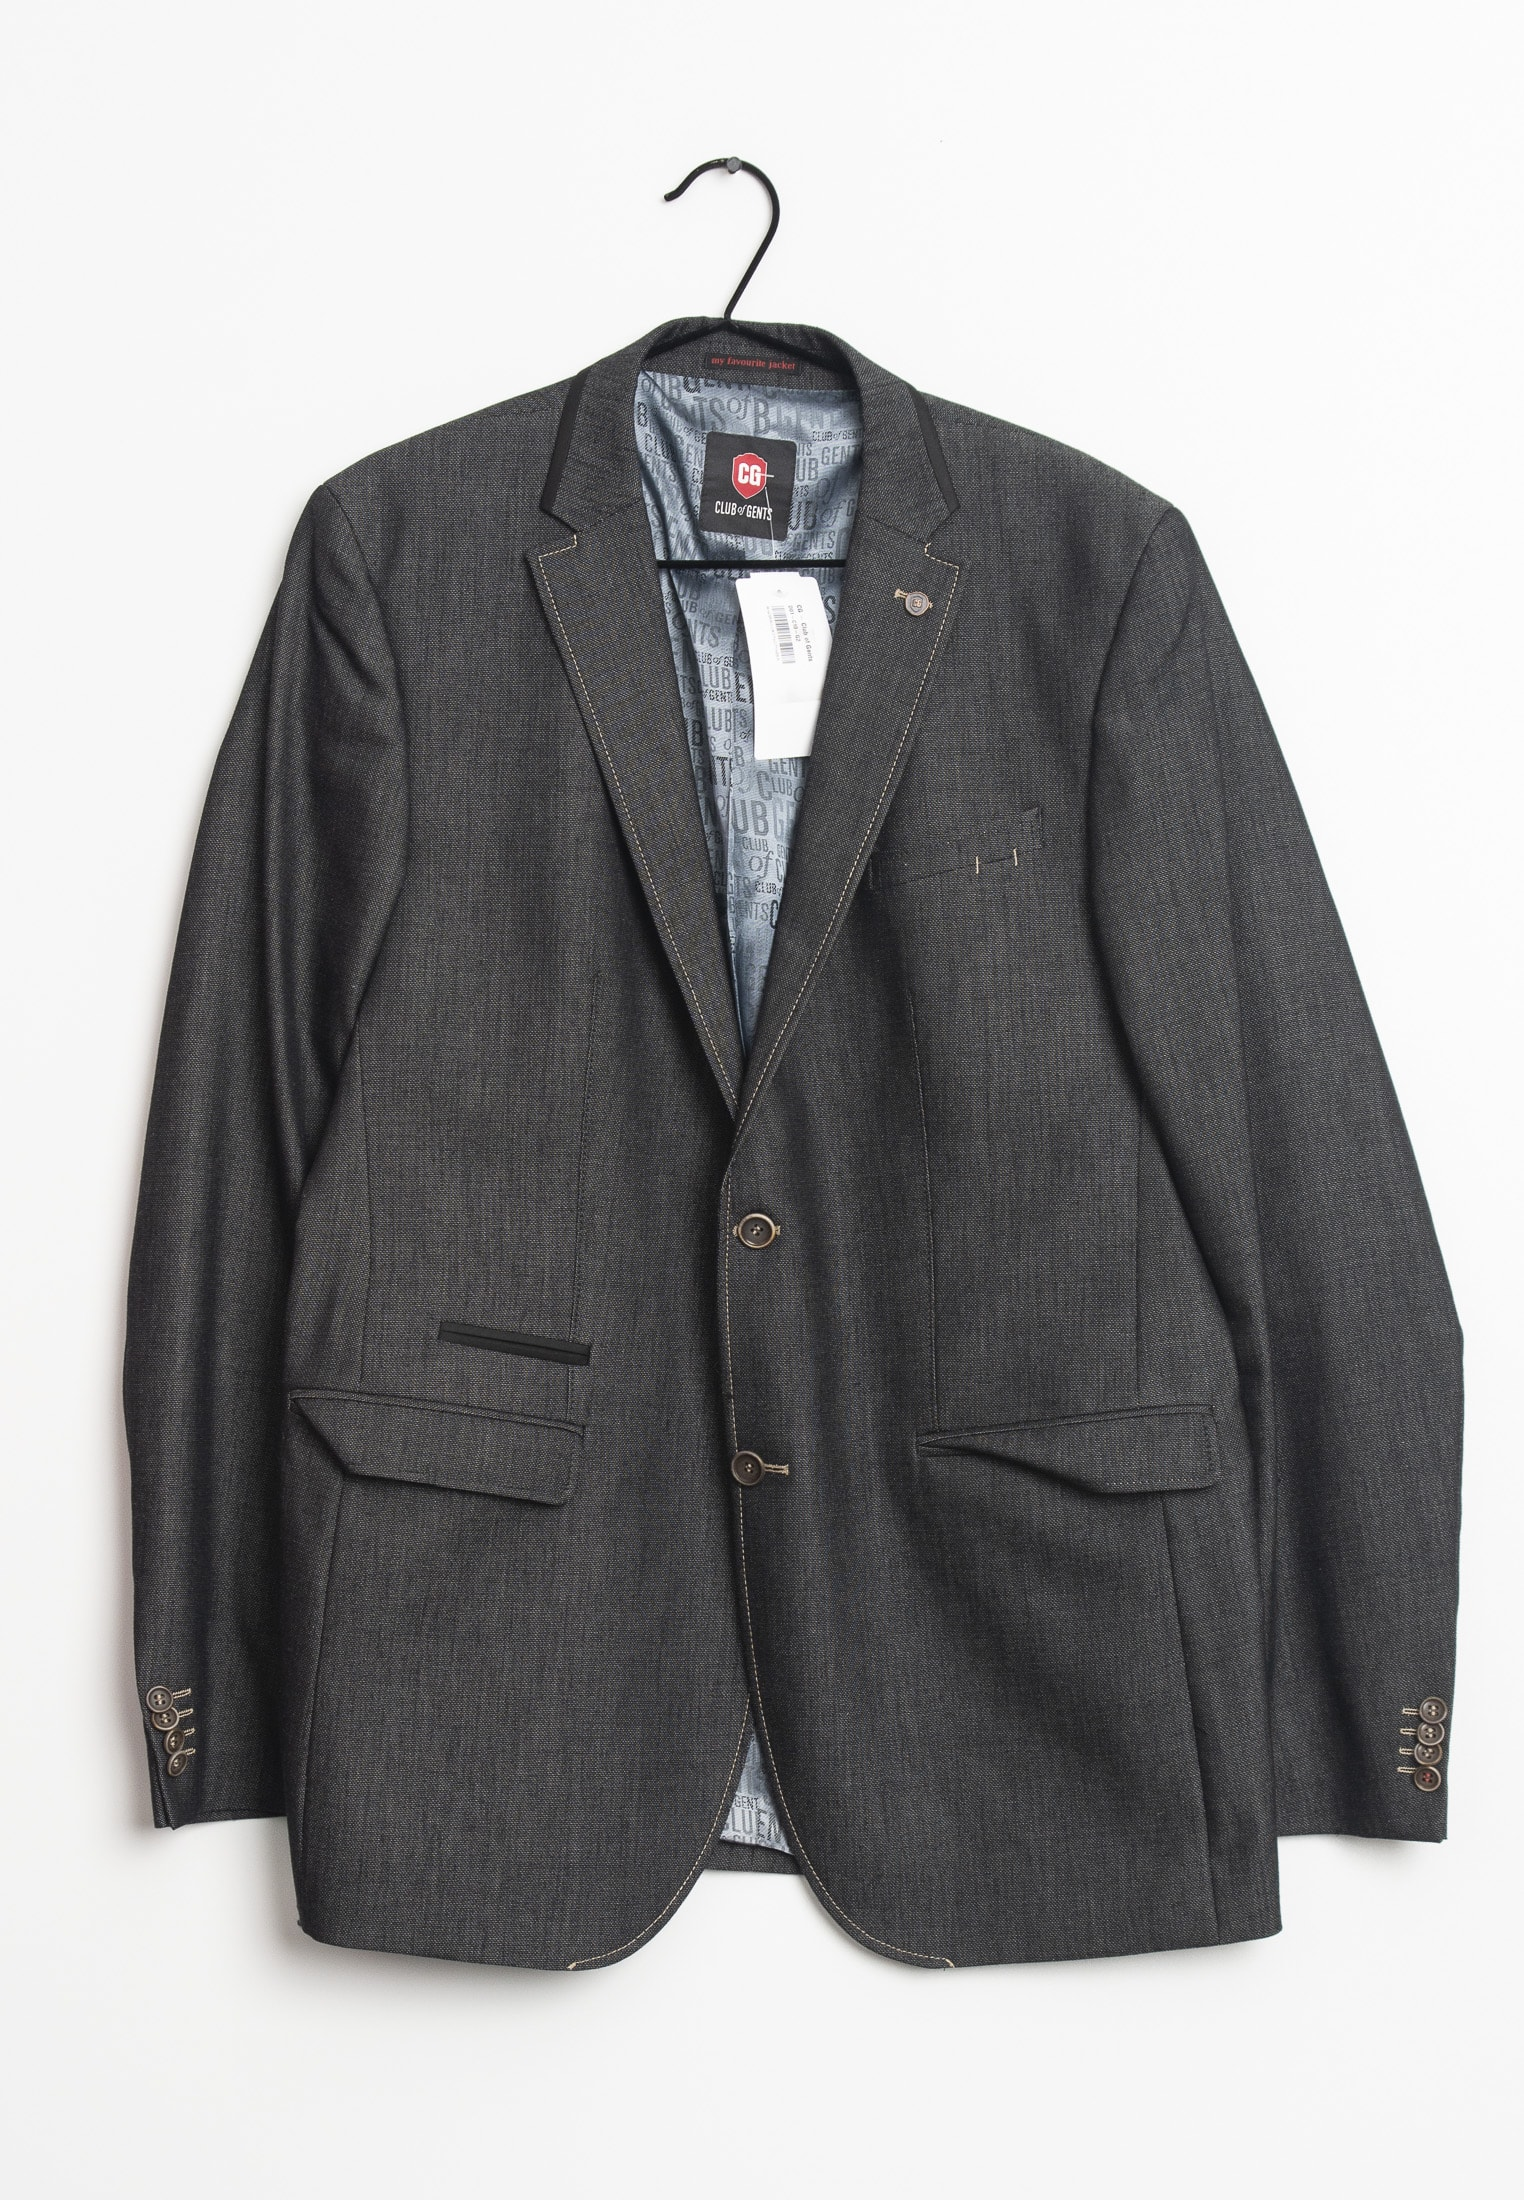 CG – Club of Gents blazer, grå, 106